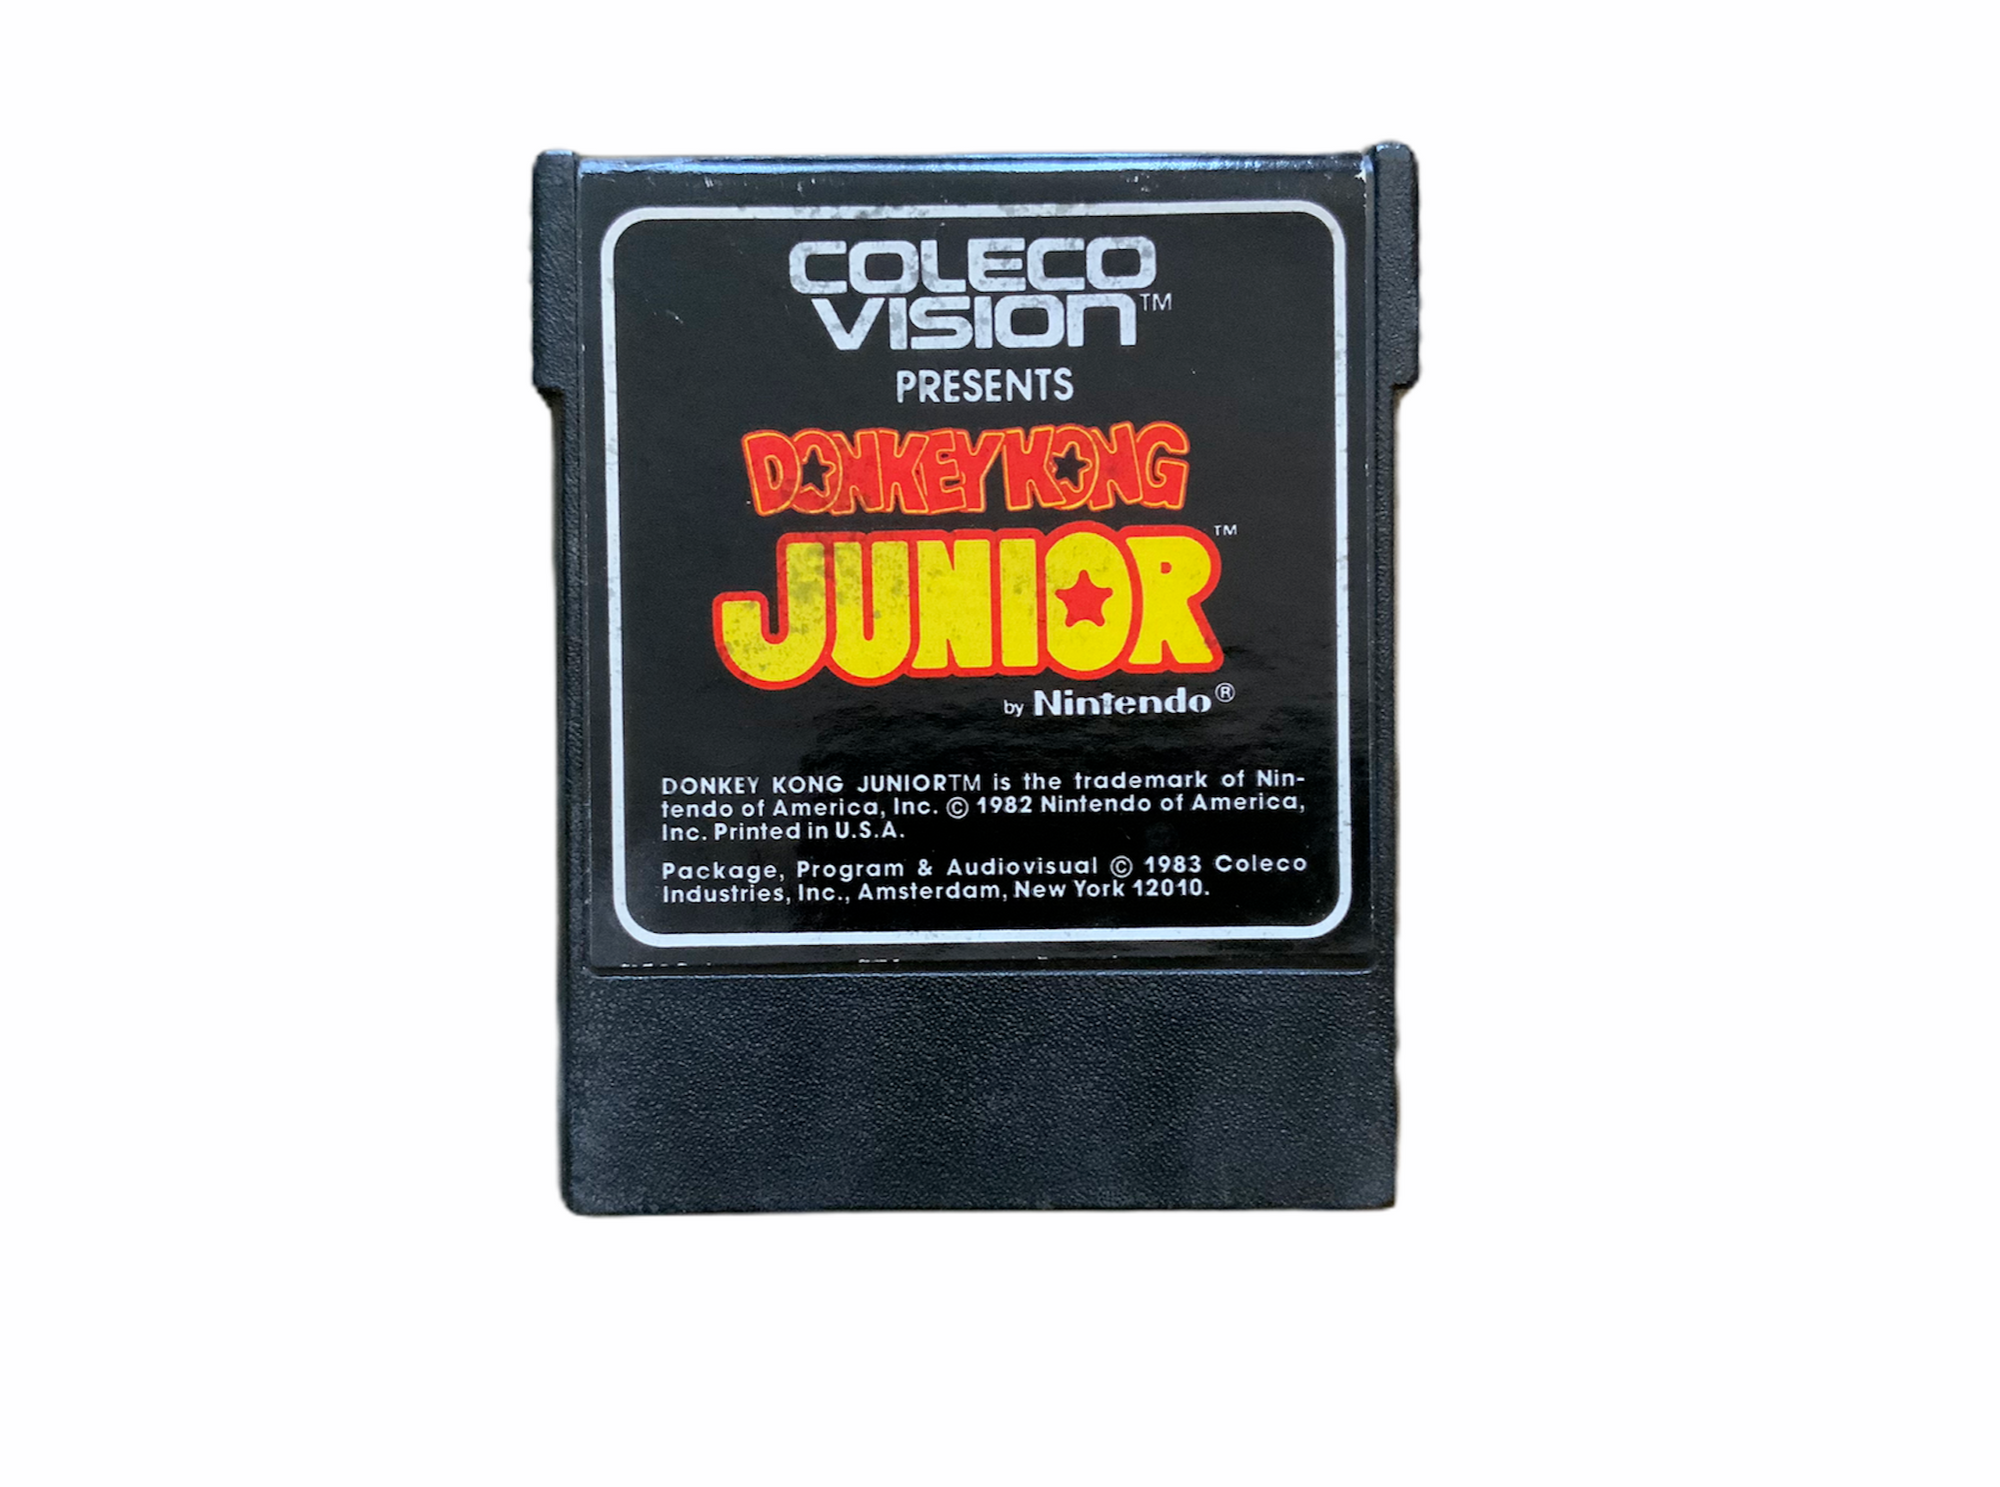 Colecovision Donkey Kong Junior Video Game Vintage Retro T831